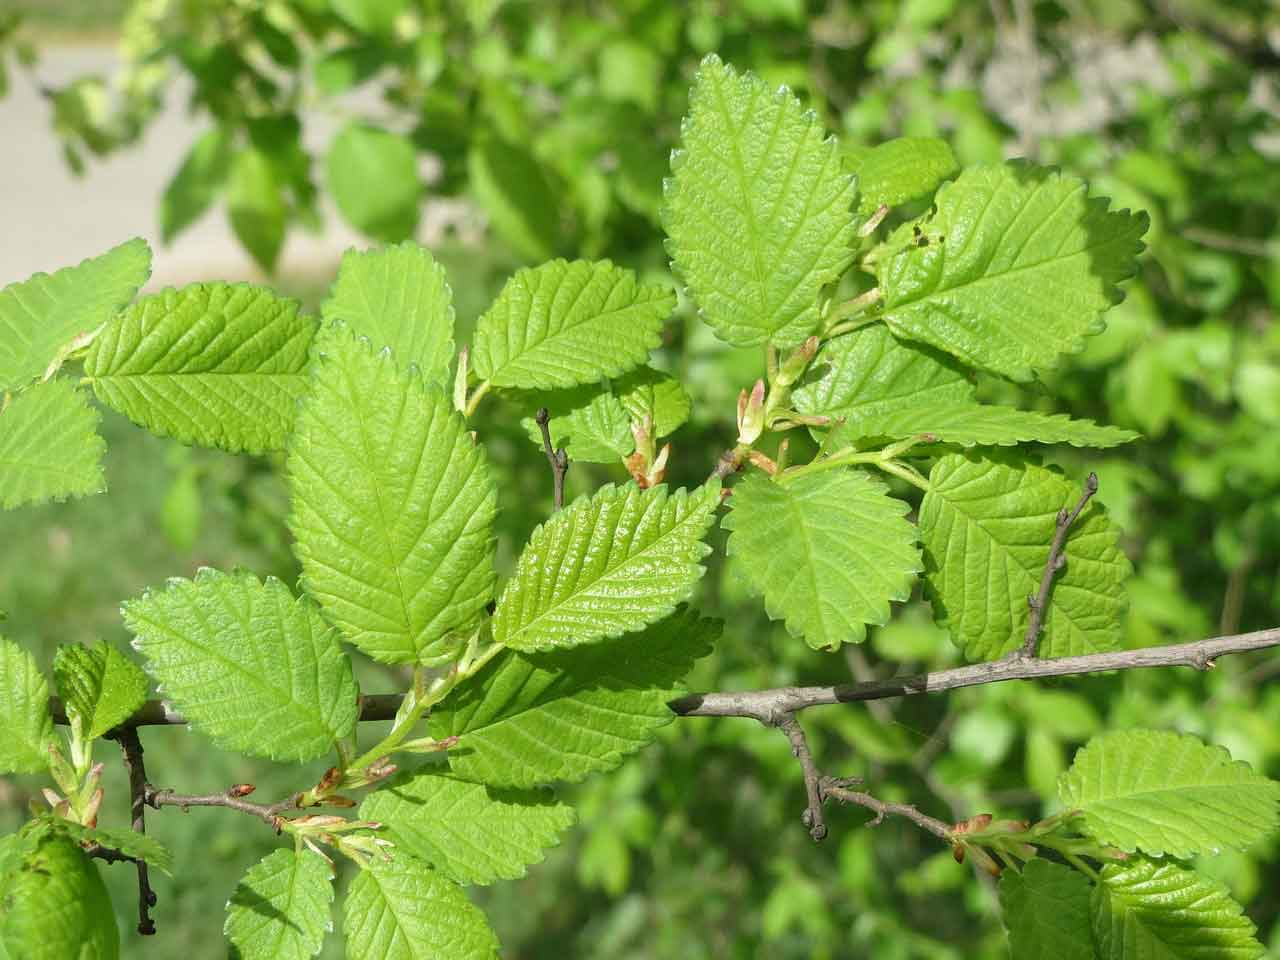 The leaves of a Slippery Elm tree